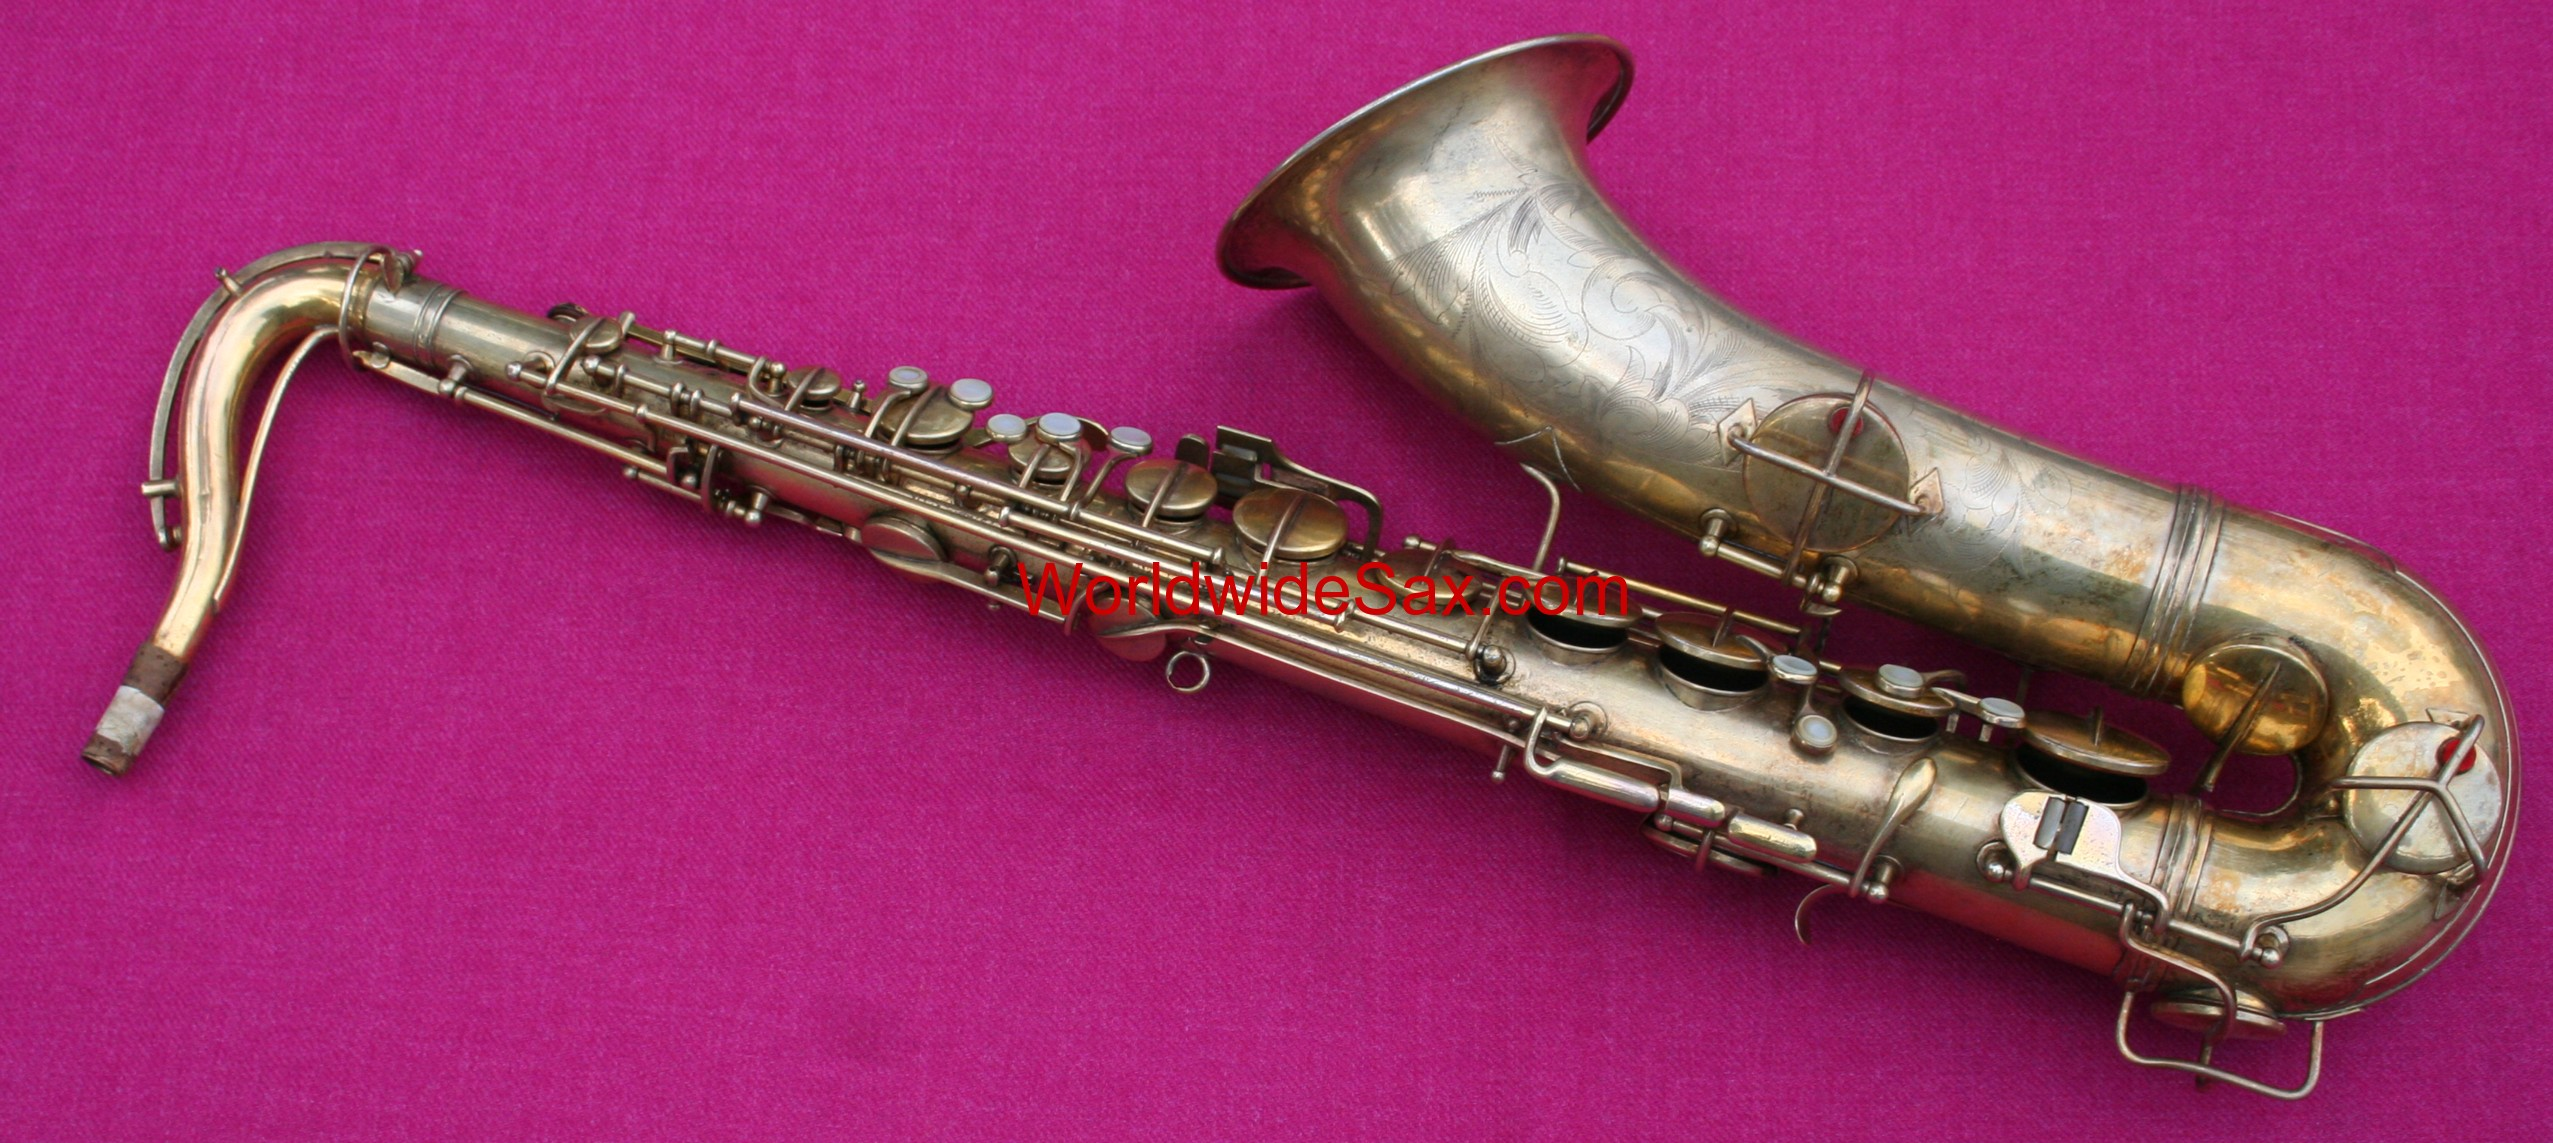 Conn saxophone serial number dating 10